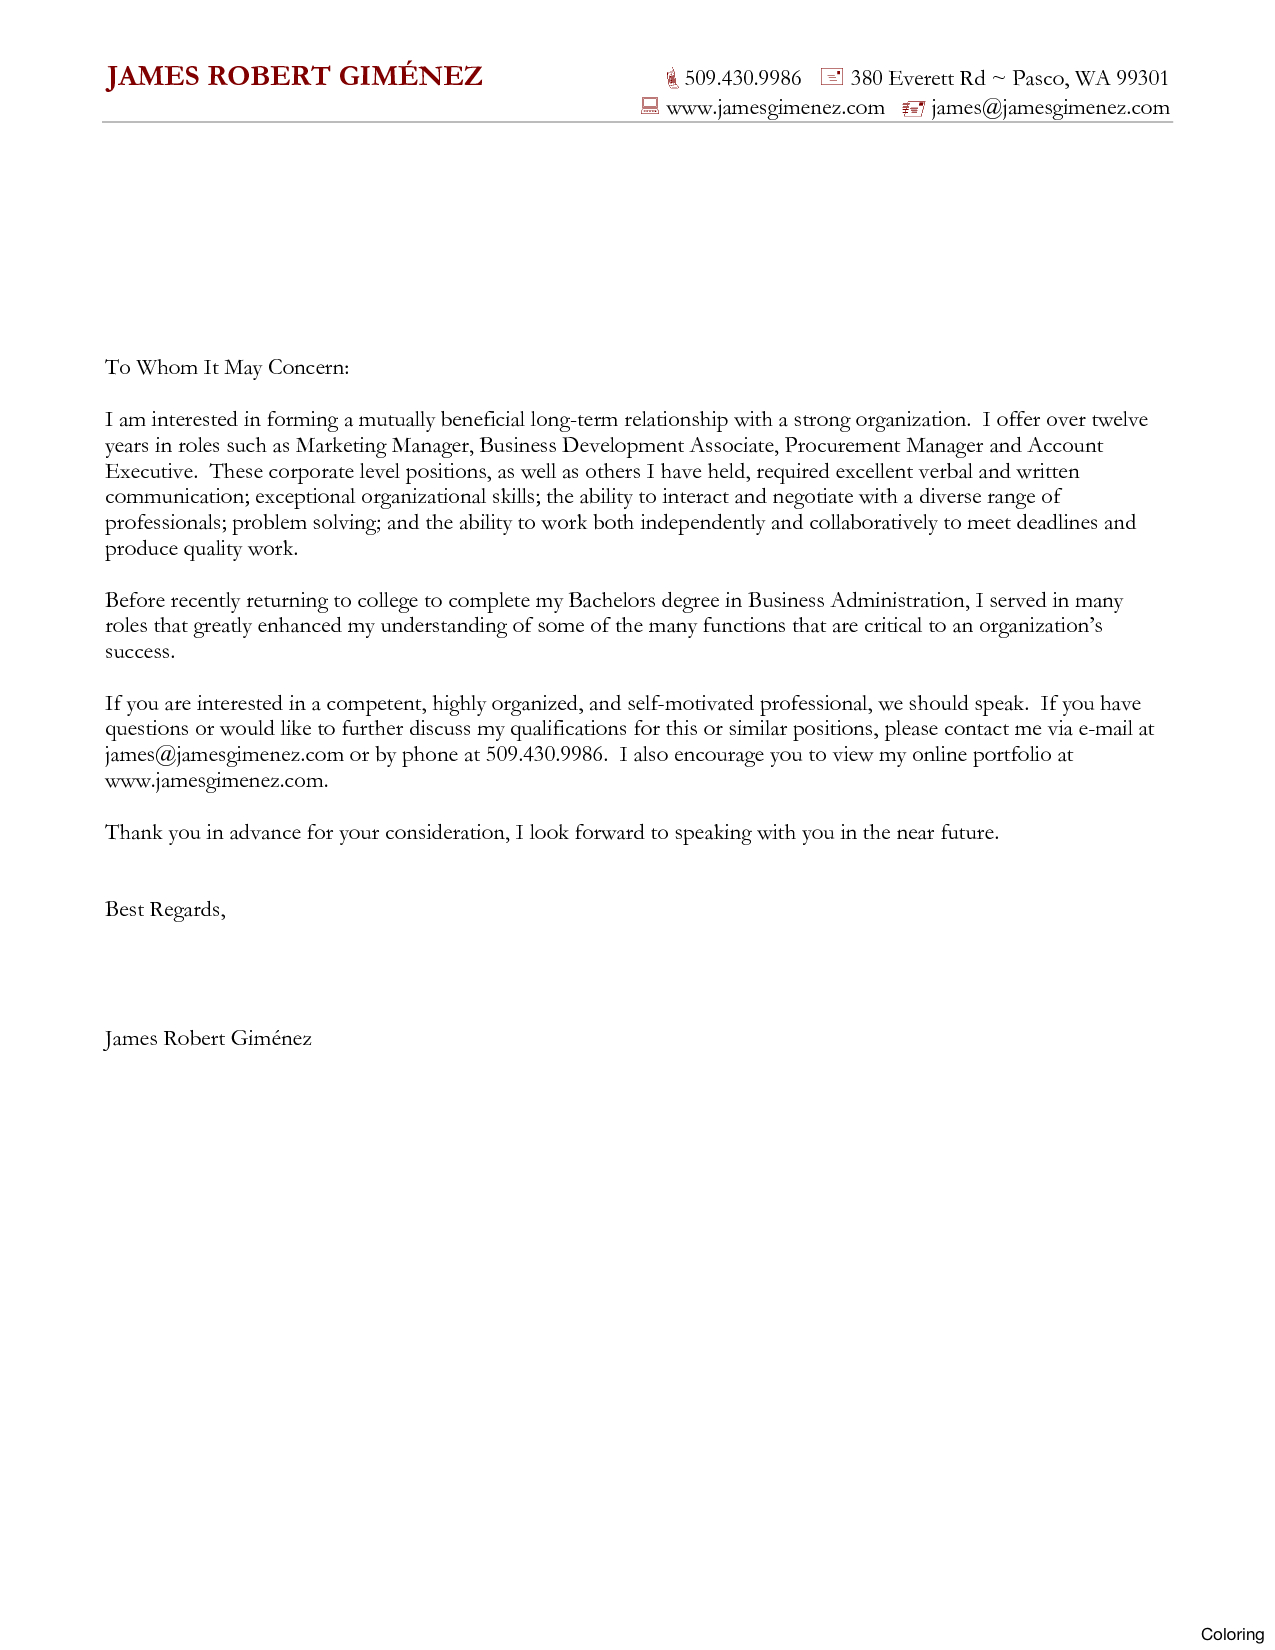 Generic Cover Letter Template Torte